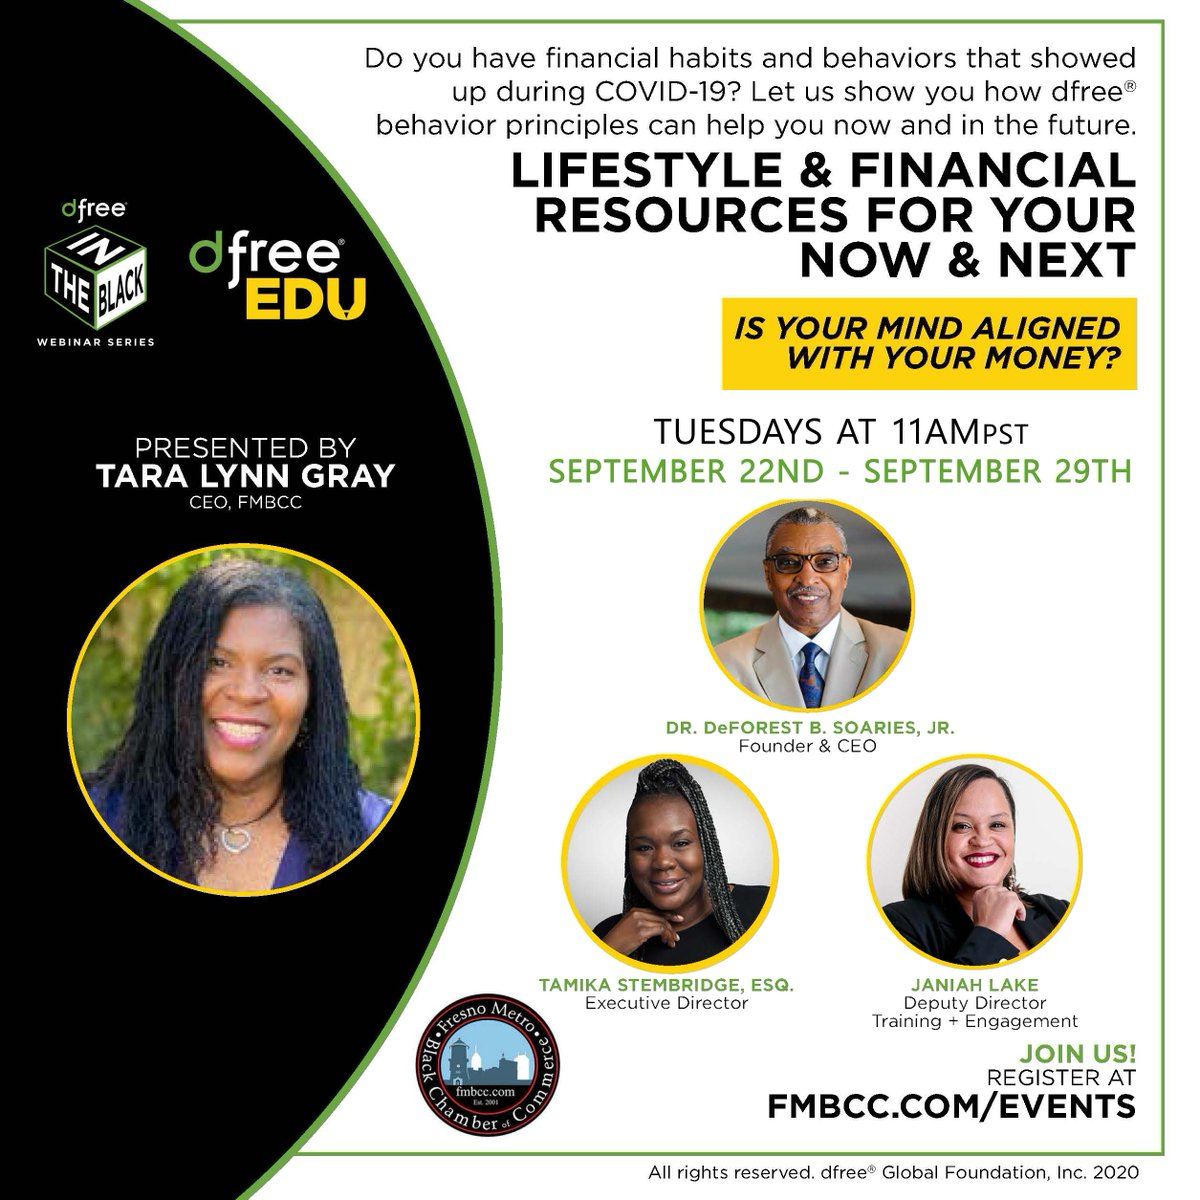 ONLY TWO SESSIONS REMAINING: Join us on Tuesday as we continue our thought-provoking conversation on the tools needed to live a @myDFree lifestyle and the 12-steps to financial independence.  Register Here: https://t.co/mOB0WZCcOJ https://t.co/g6CJANZGCd